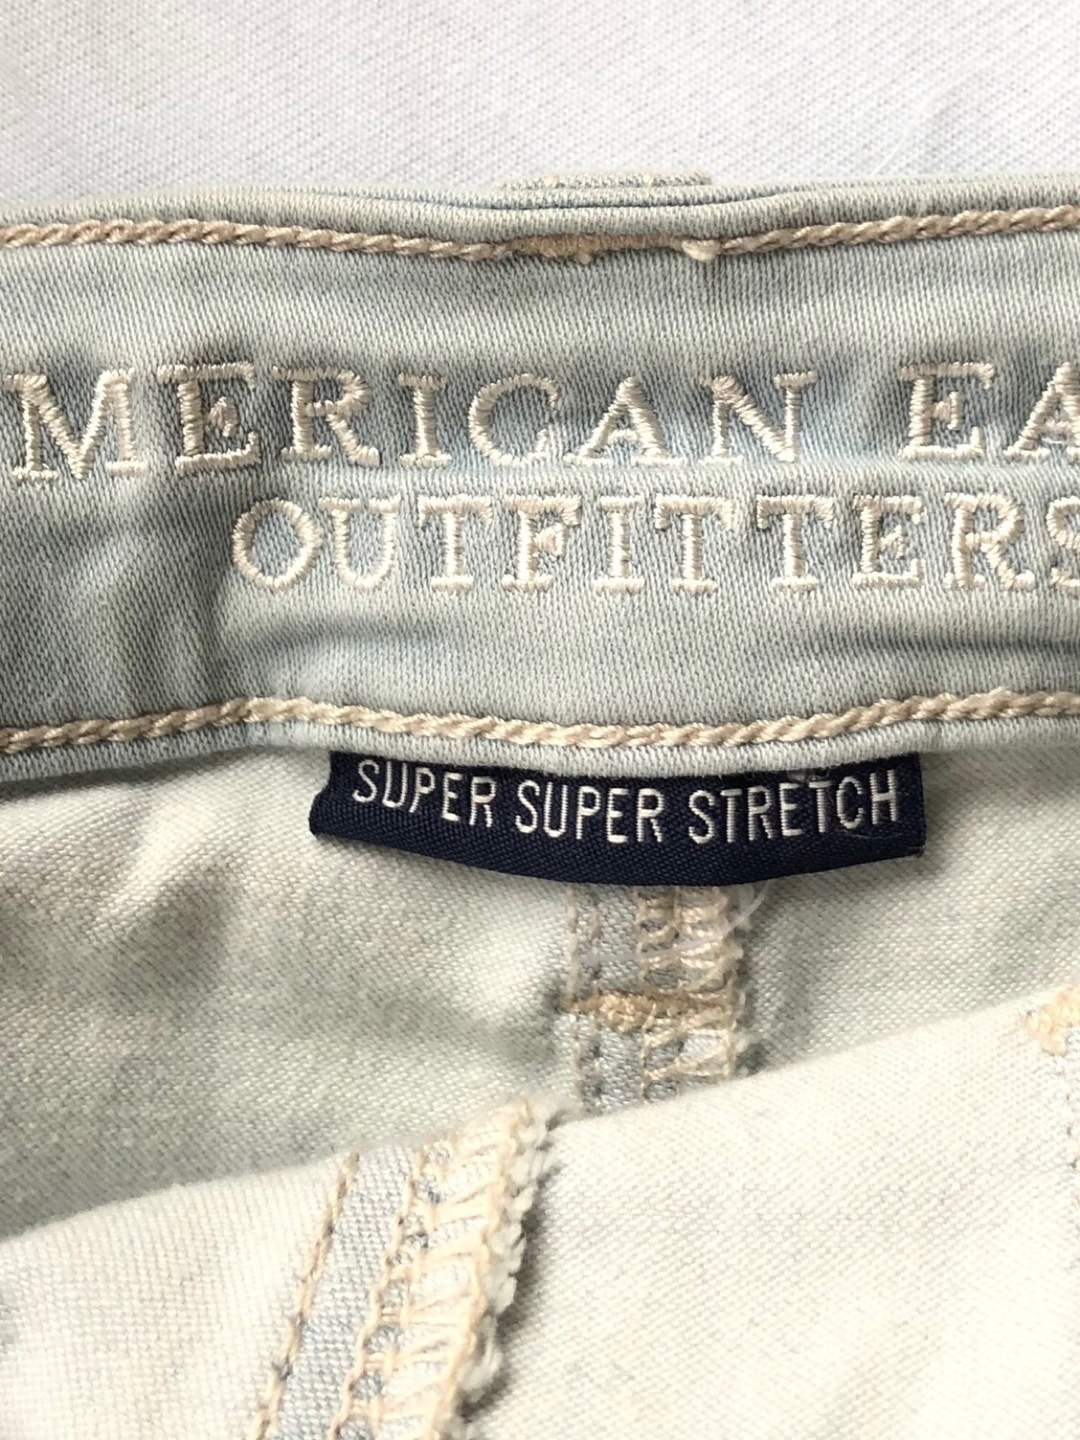 Women's trousers & jeans - AMERICAN EAGLE OUTFITTERS photo 4